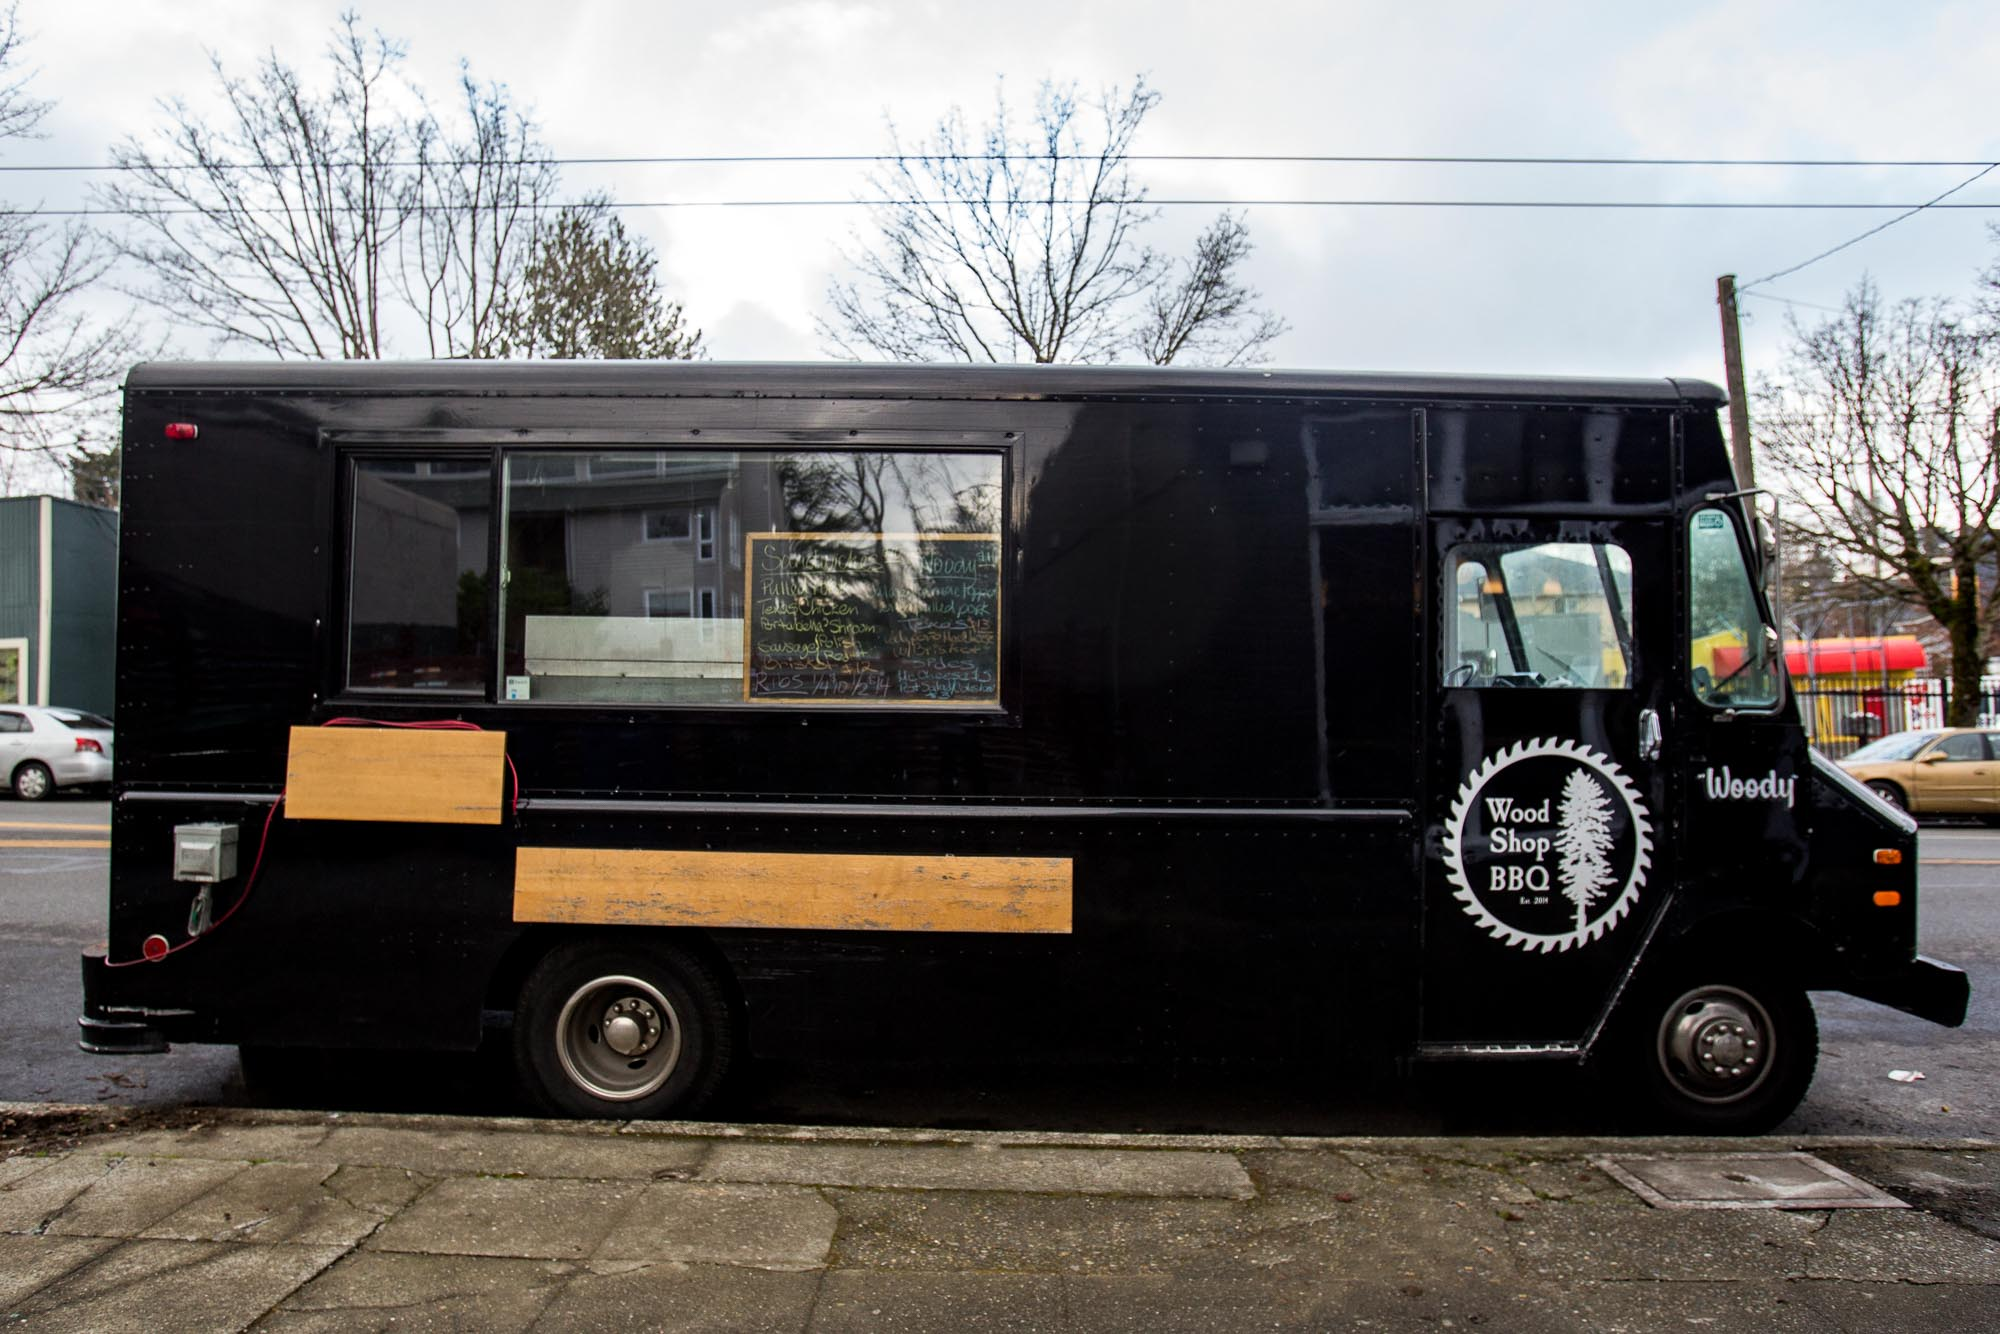 The side view of a black food truck with the Wood Shop BBQ logo in white on the door.